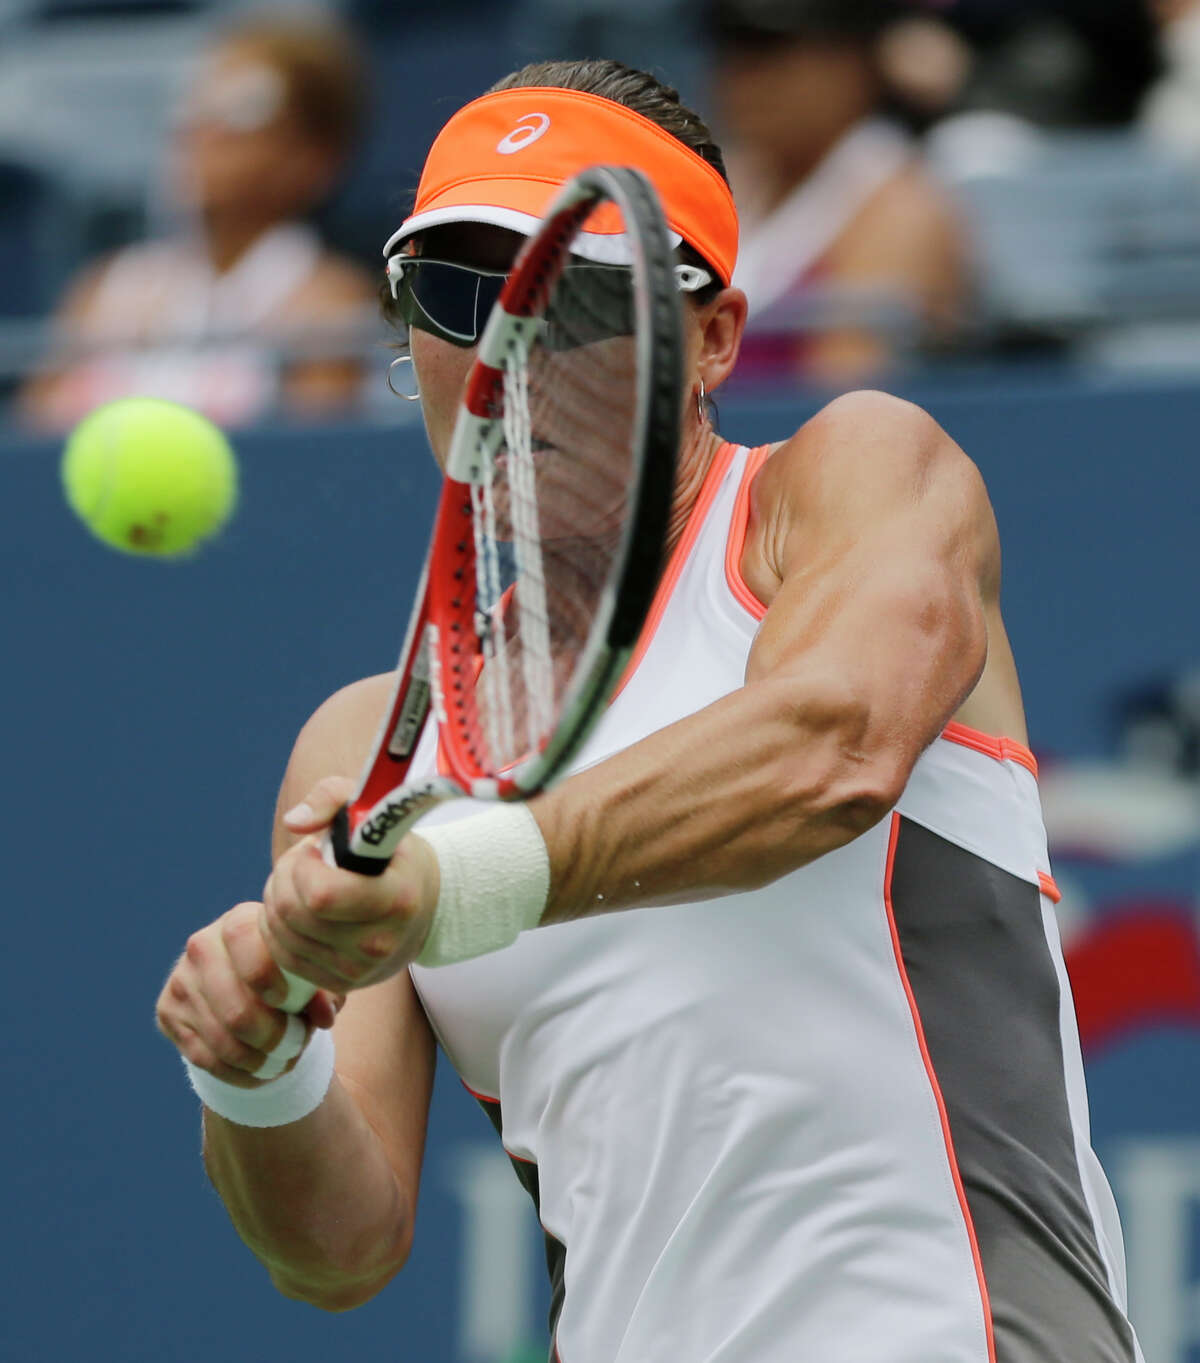 Samantha Stosur, of Australia, returns a shot to Petra Martic, of Croatia, at the 2012 US Open Tennis tournament, Monday, Aug. 27, 2012, in New York. (AP Photo/Mike Groll)